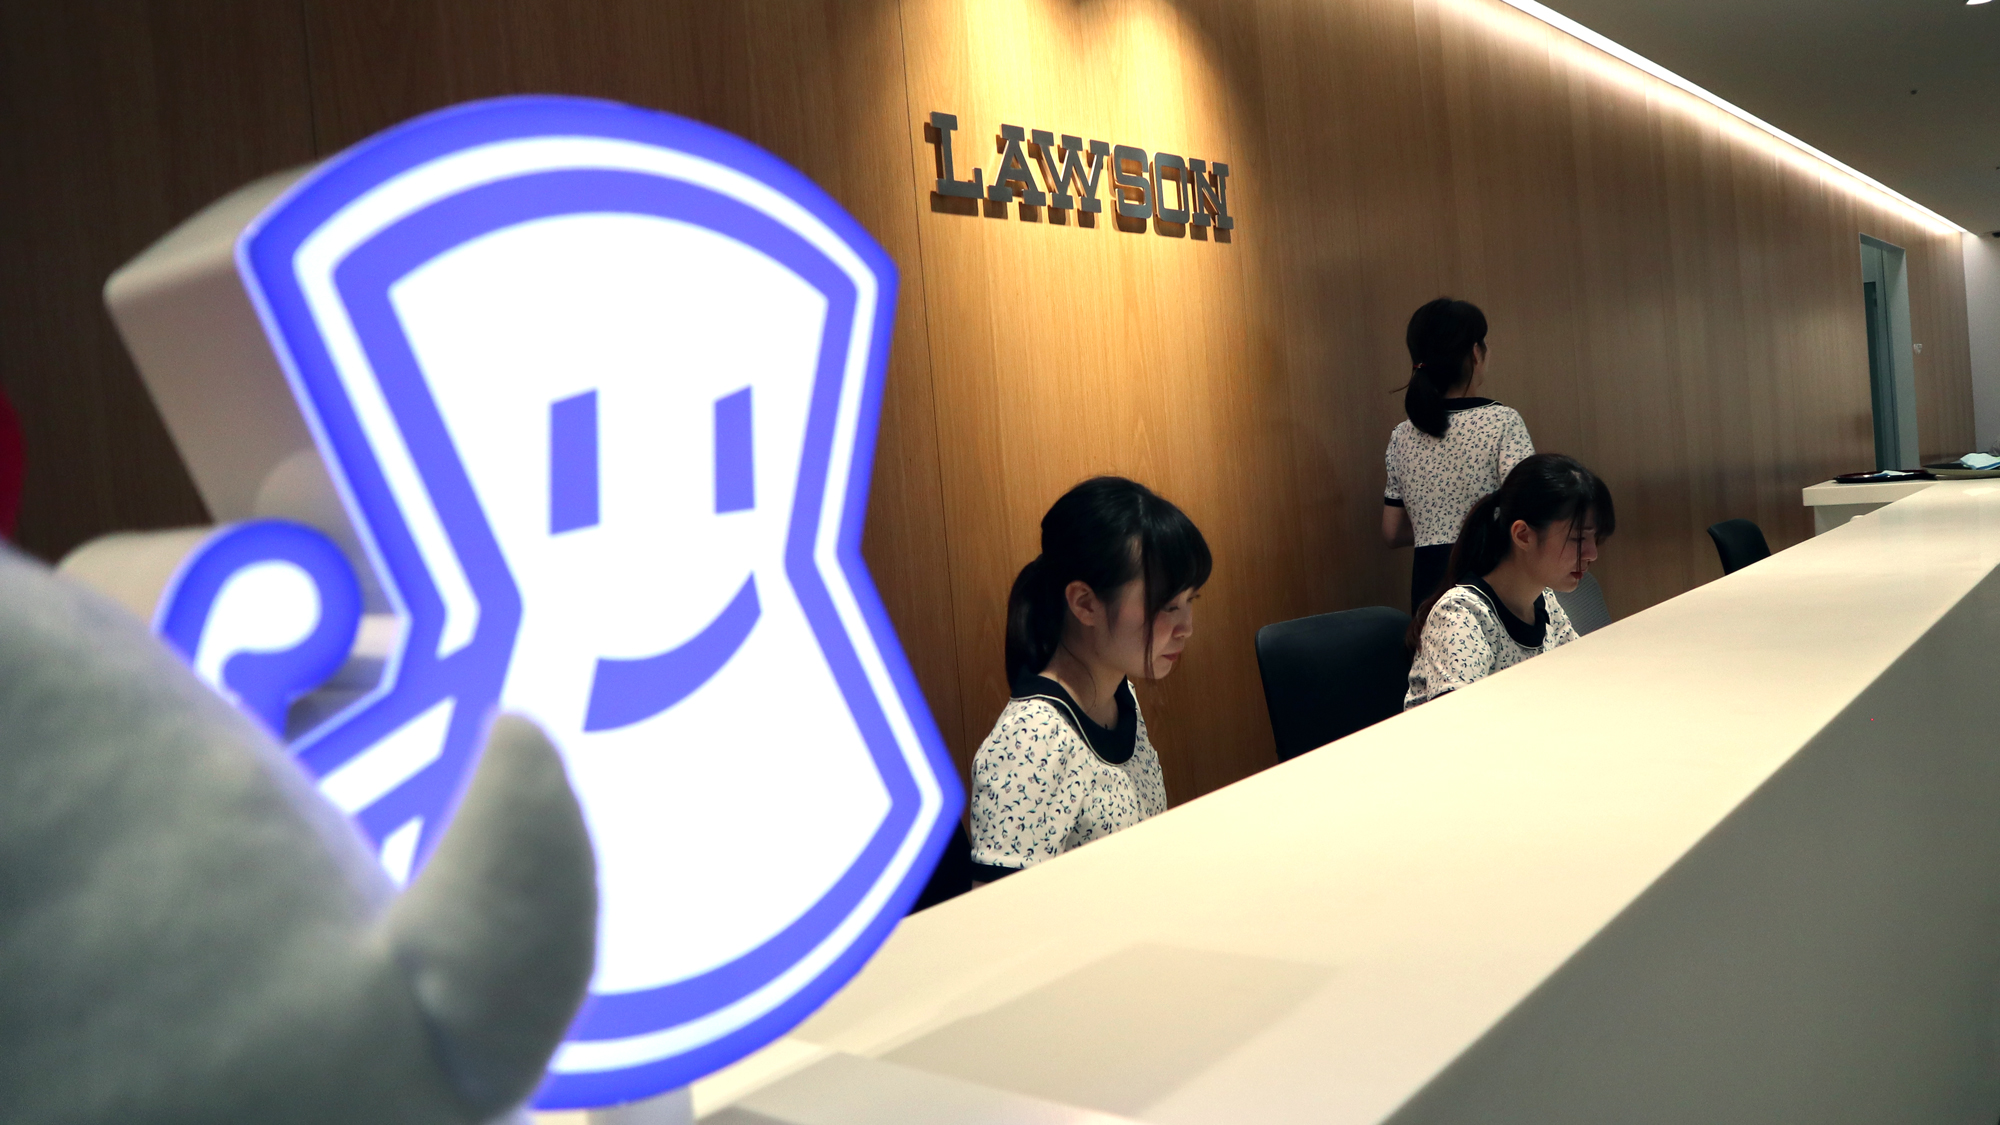 The front lobby of Lawson company headquarters in Tokyo. A cartoon version of the Lawson emblem sits on a long white counter. Three women wearing matching black and white dresses sit behind the counter.